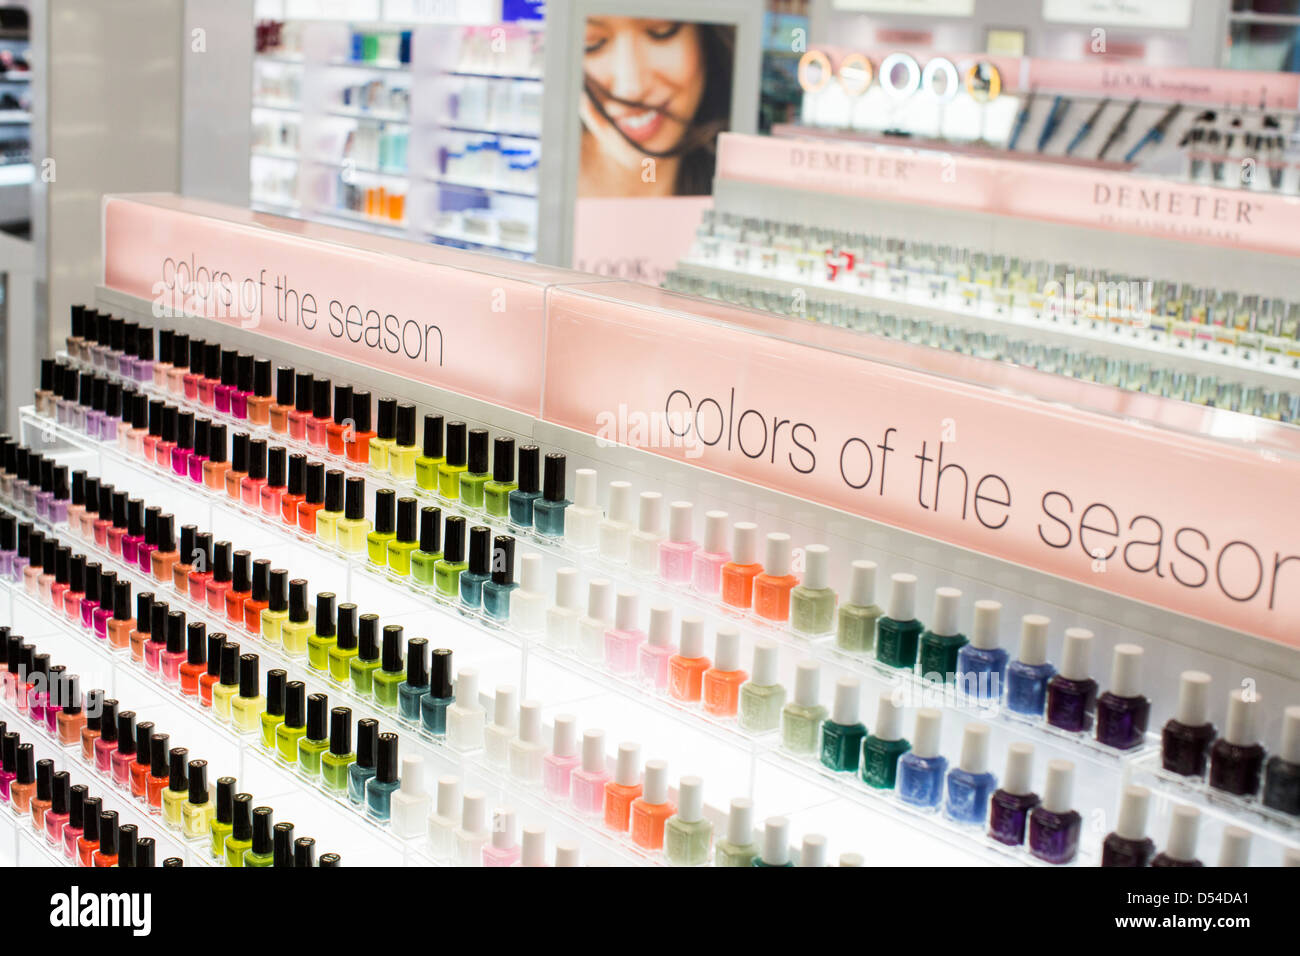 Nail polish on display at a Walgreens Well Experience Flagship store in downtown Washington, DC.  - Stock Image